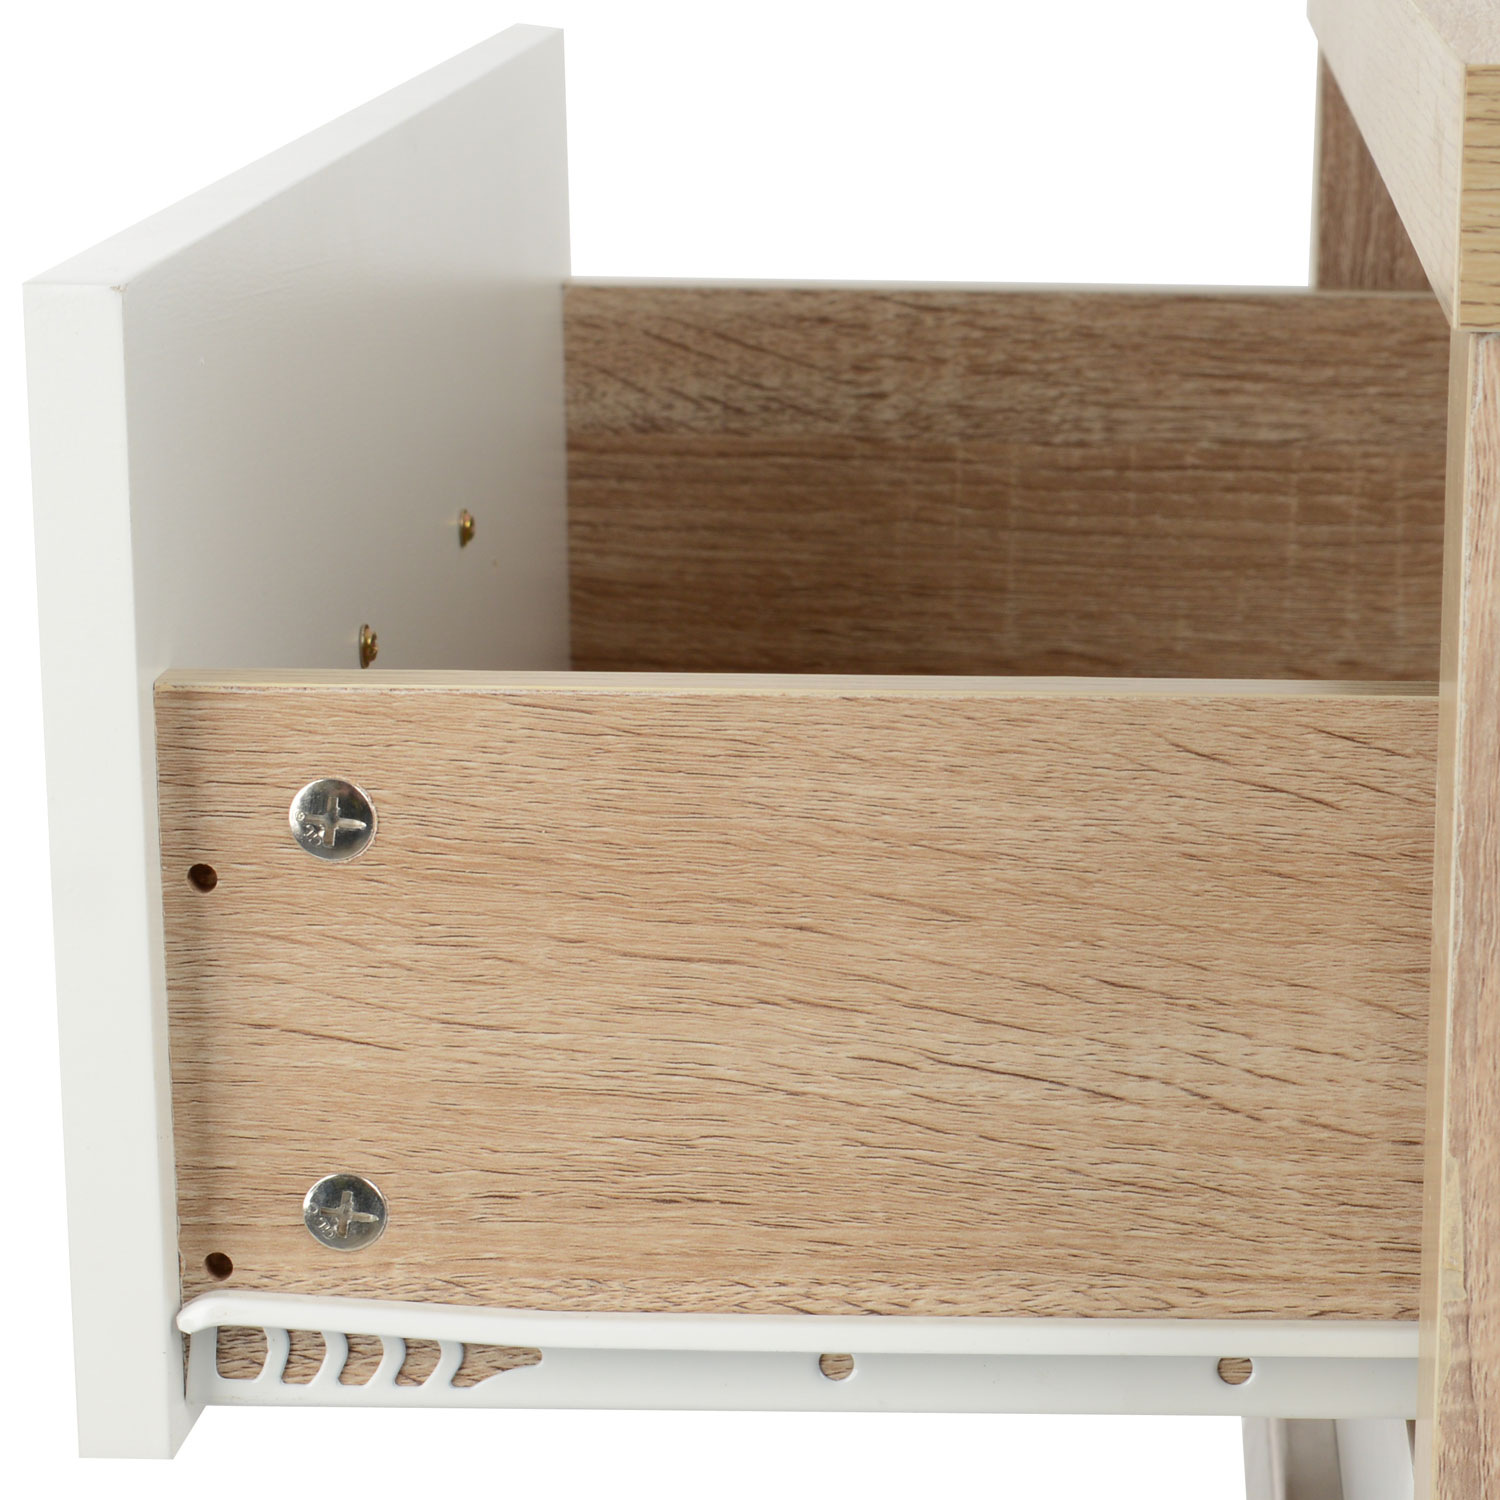 2 drawer oak effect white wood bedside cabinet modern With what kind of paint to use on kitchen cabinets for wall art man climbing rope